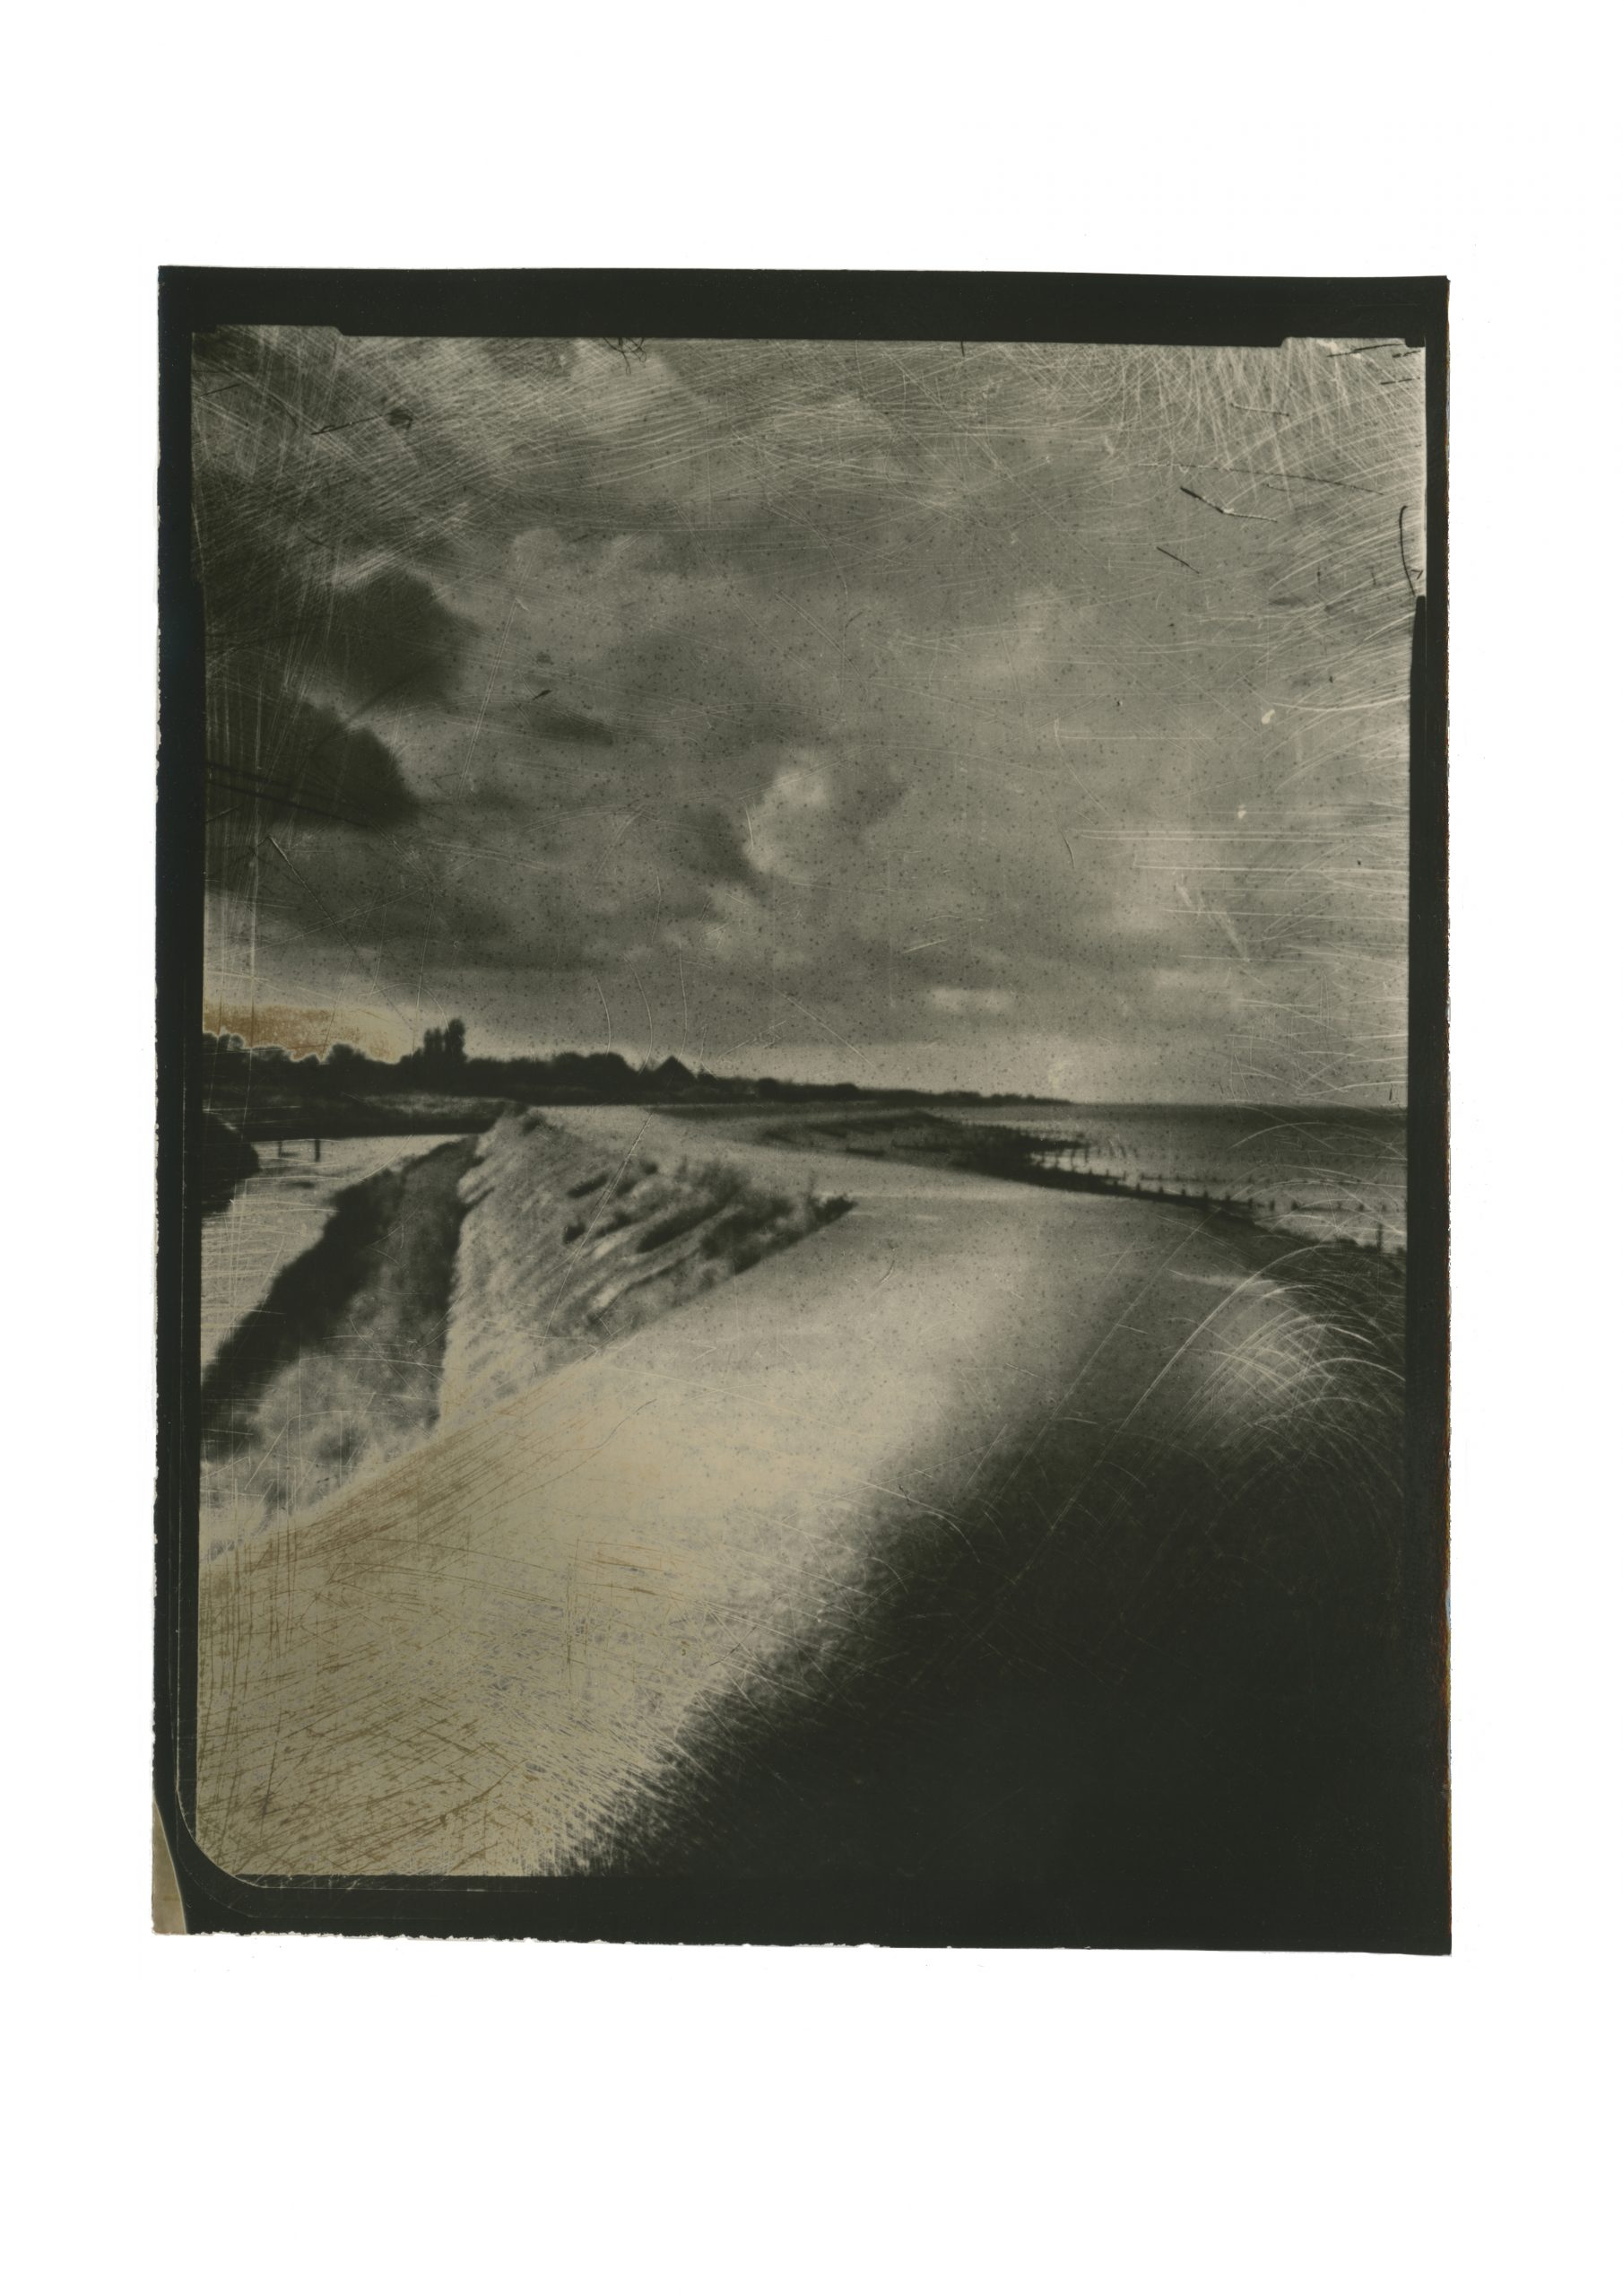 Sea defence straddled by two bodies of water, one on the left sea on the right.raised pathway  leading to a vanishing point with silhouettes of military buildings in the distance